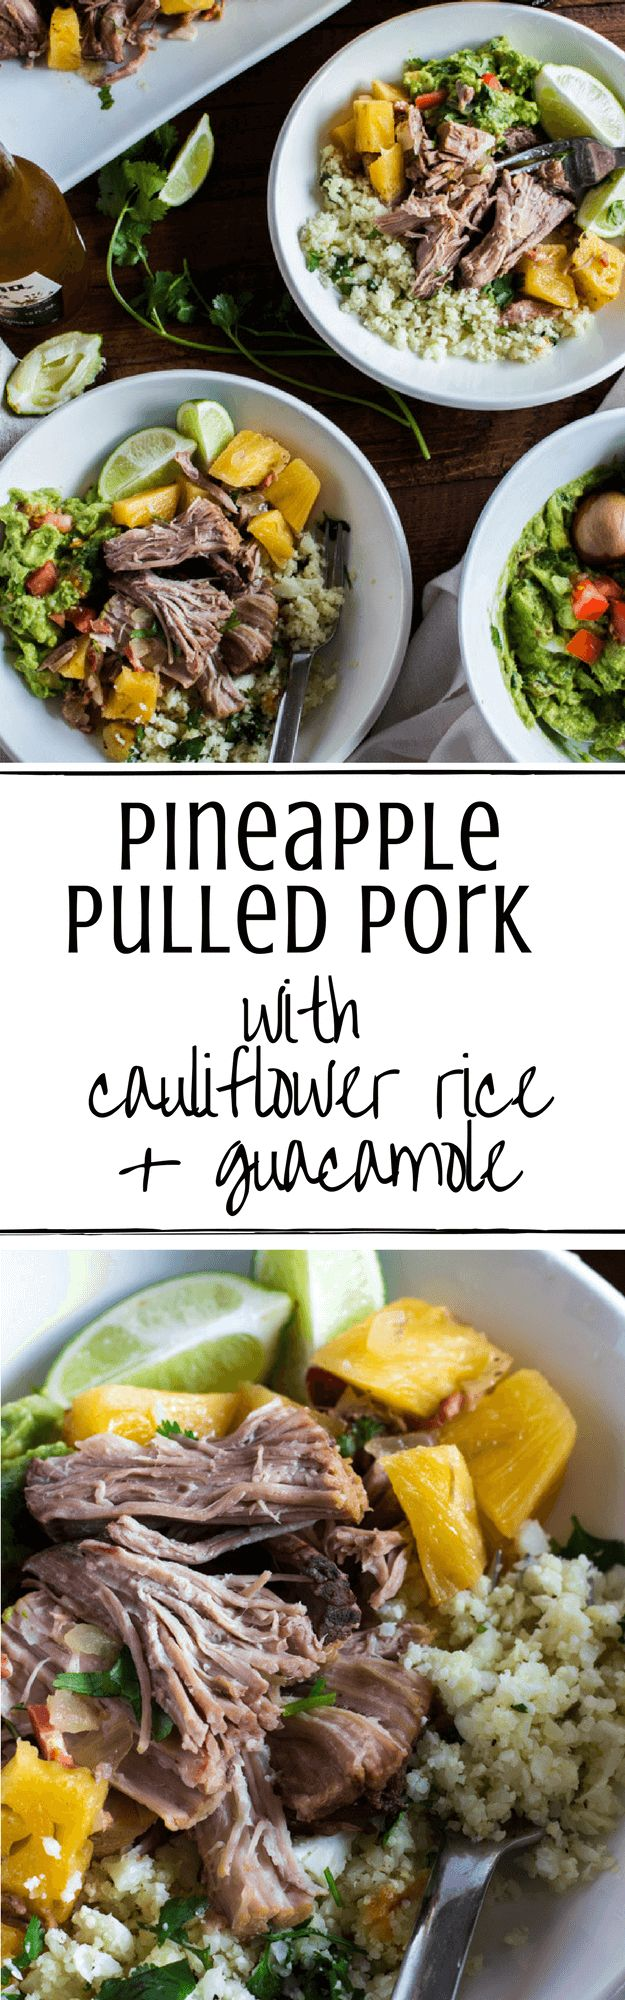 """Slow Cooker Pineapple Pulled Pork with Cauliflower """"Rice"""" + Guacamole - Pork shoulder slow cooked with fresh pineapple, bacon, garlic, and apple cider vinegar. Then served over cilantro lime cauliflower """"rice"""" and topped with fresh guacamole. Gluten and Dairy Free. 